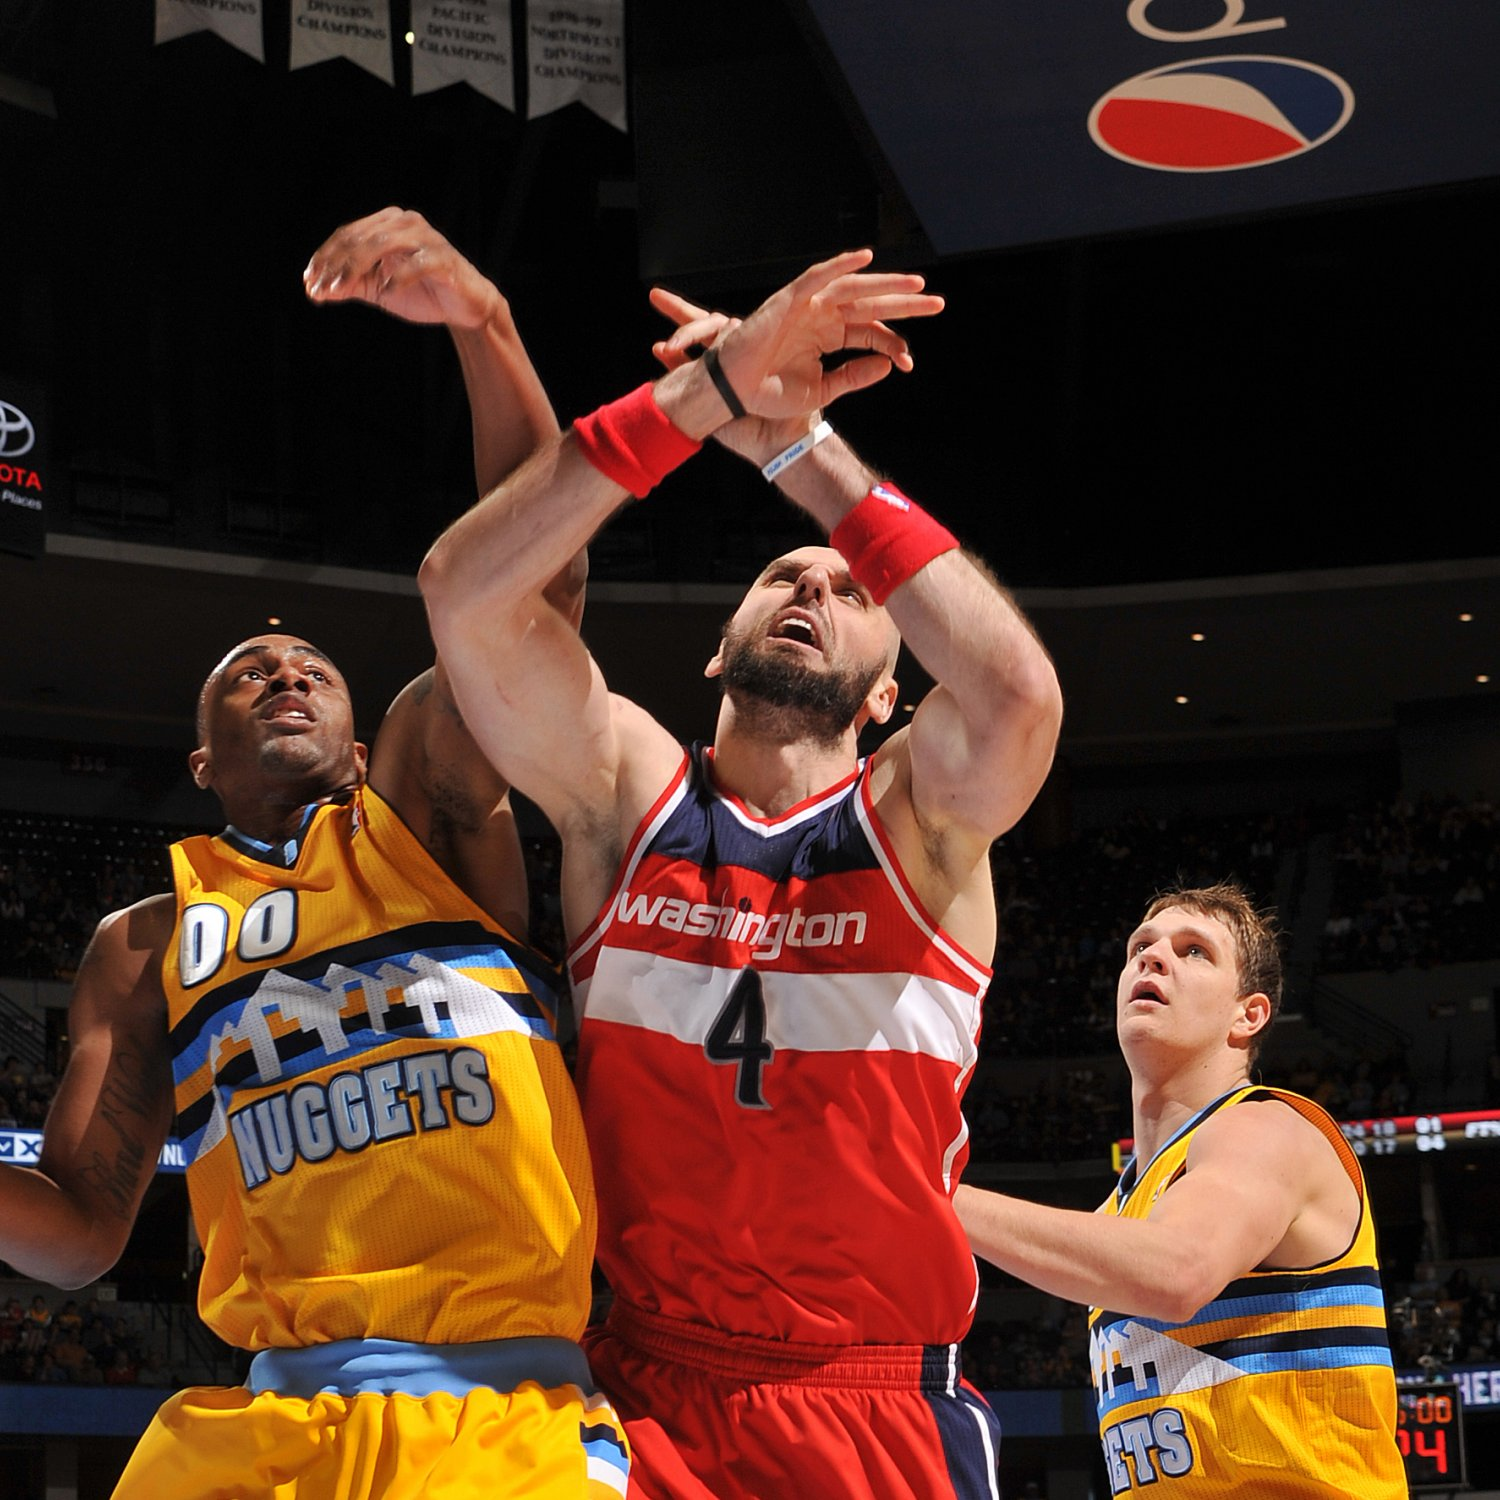 Washington Wizards Vs. Denver Nuggets 3/23/14: Video